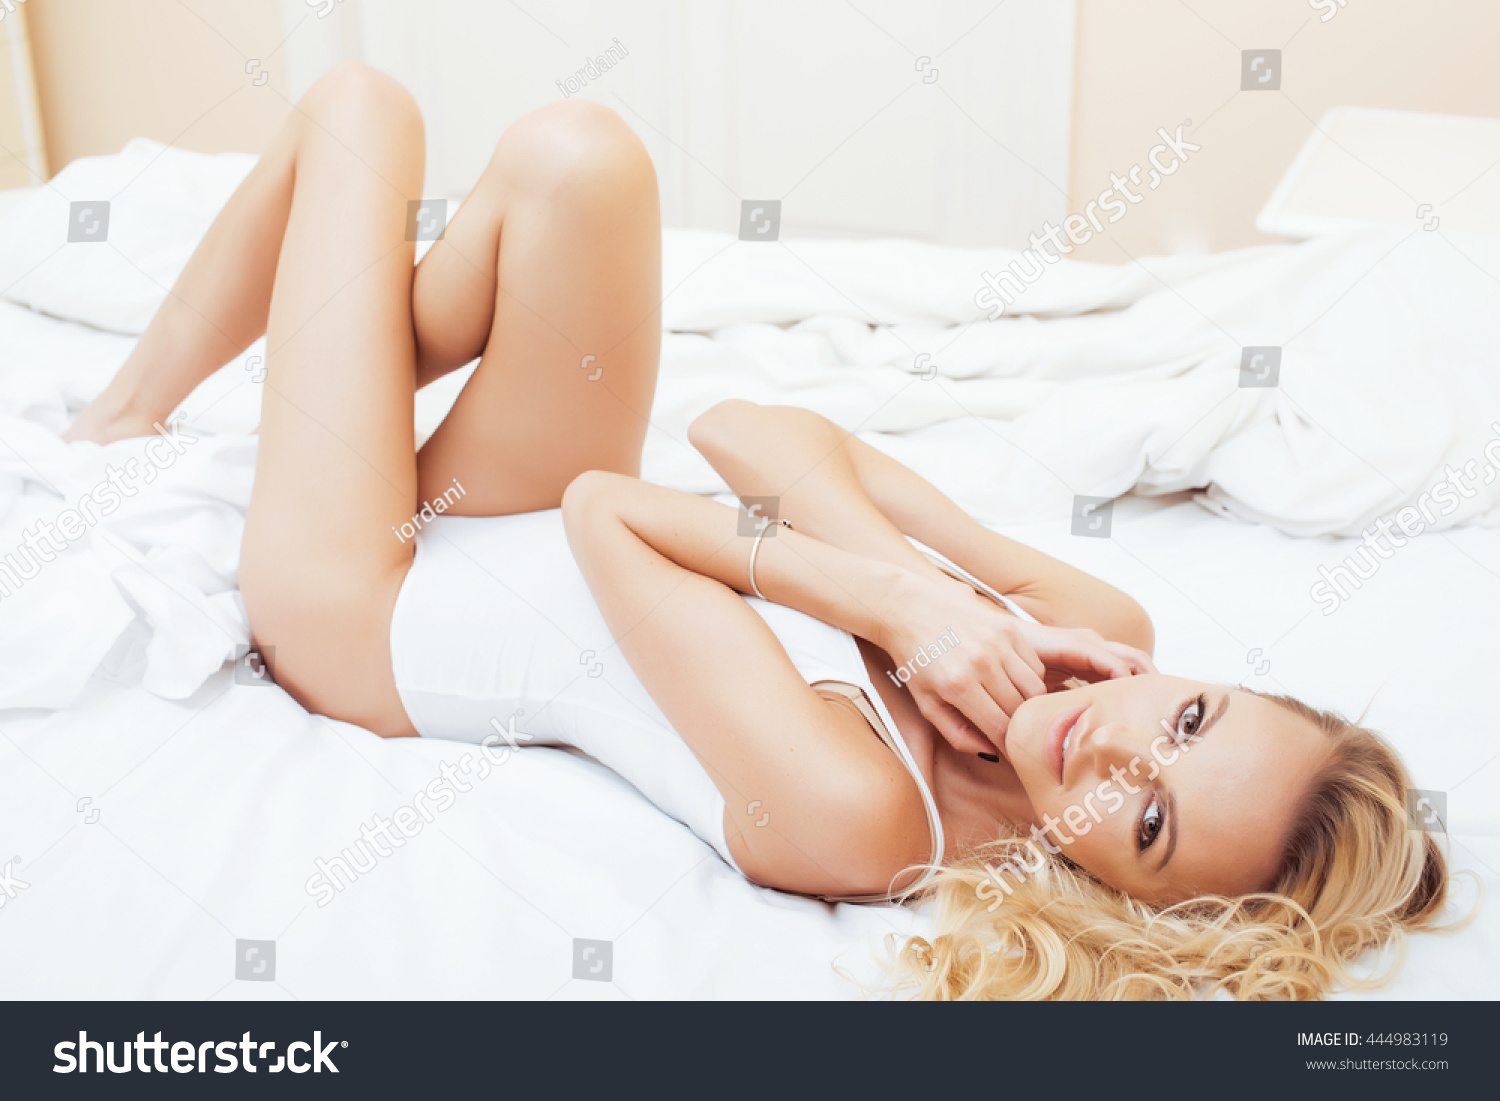 stock-photo-young-pretty-blond-woman-in-bed-covered-white-sheets-smiling-cheerful-sexy-look-close-up-happy-444983119.jpg